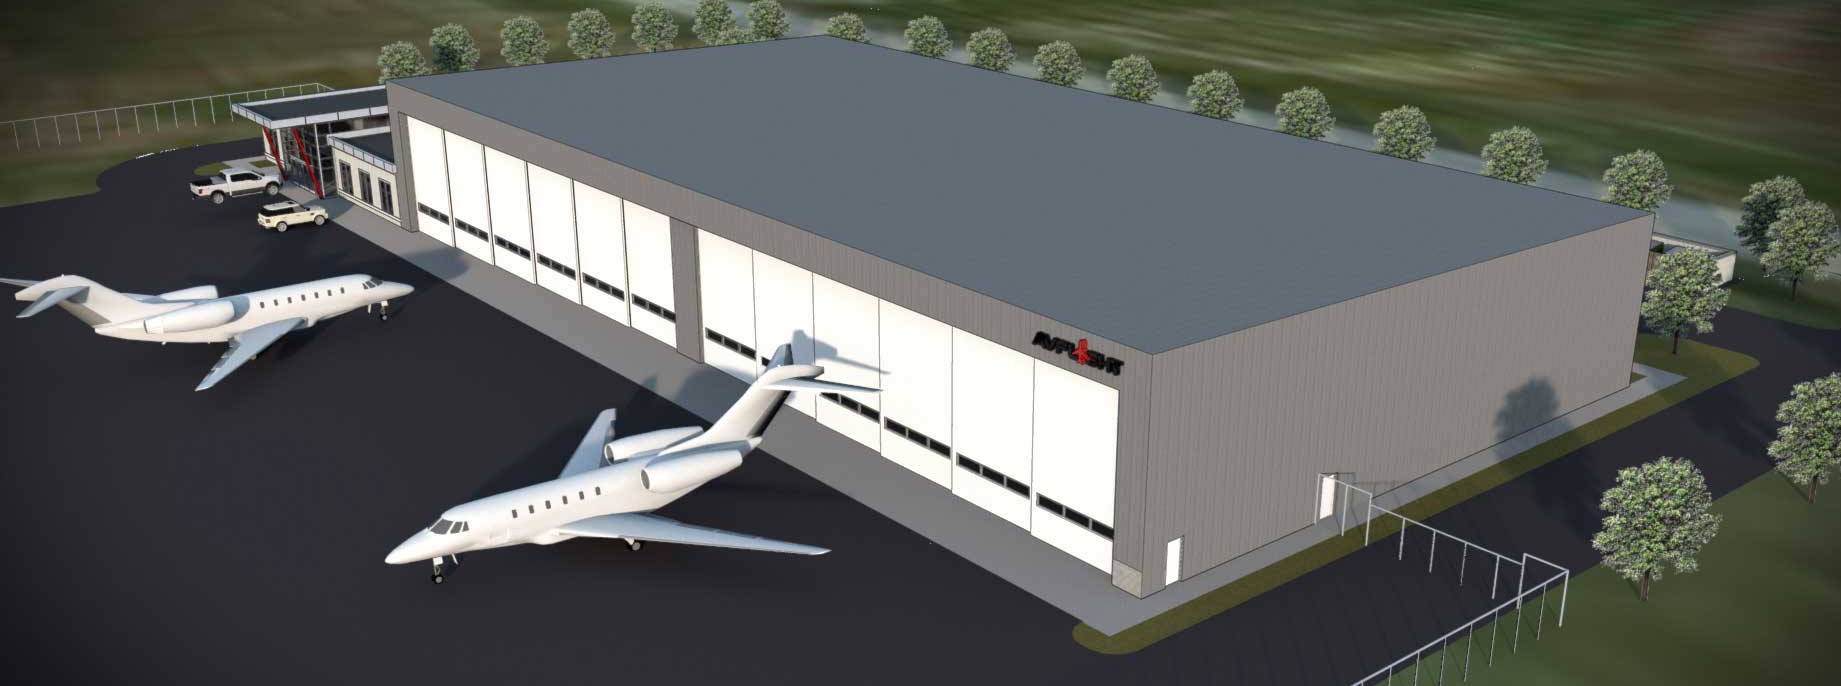 Avflight to build FBO at Grand Rapids, Michigan, USA